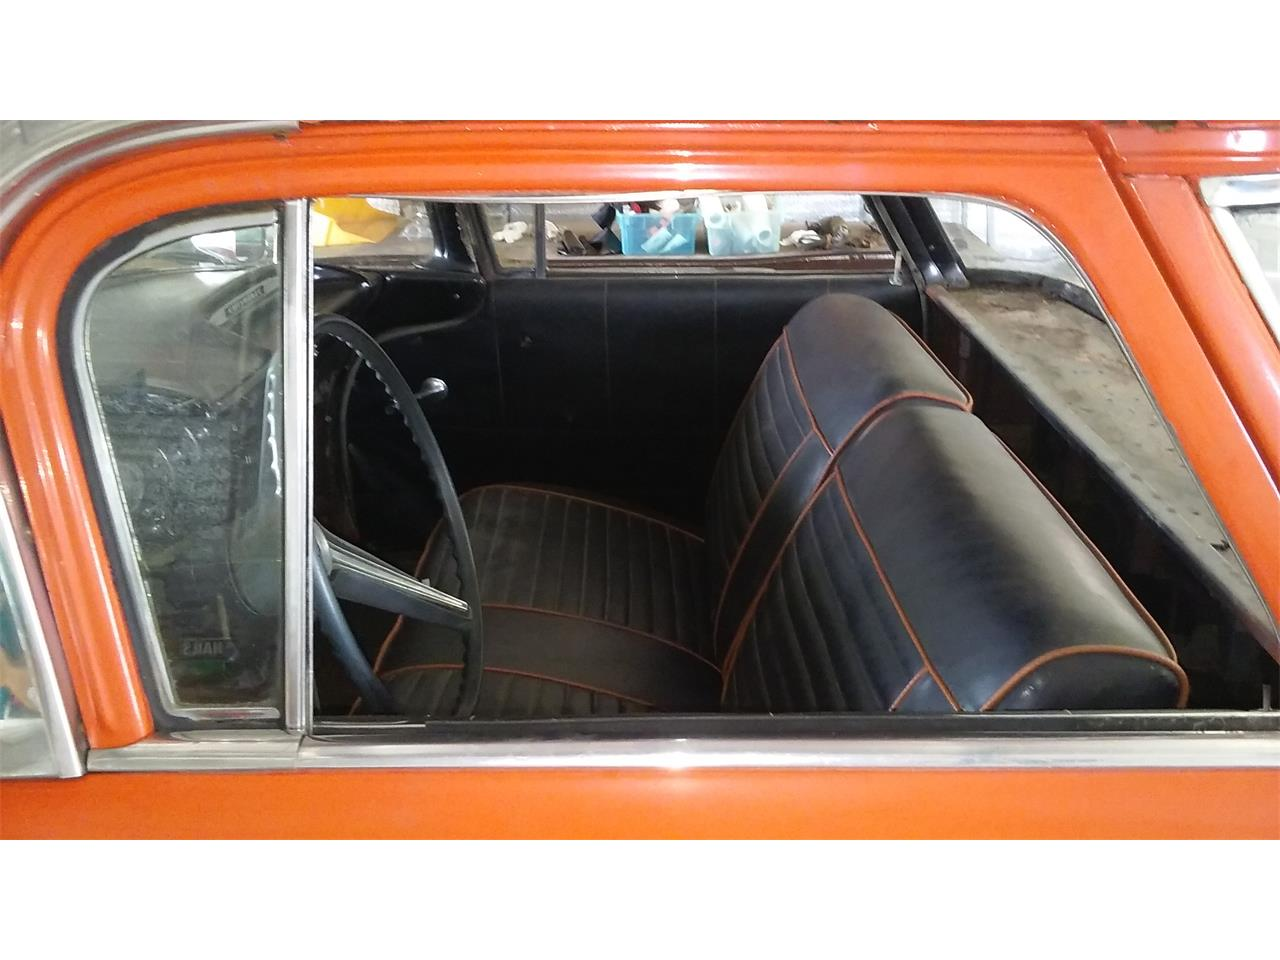 Large Picture of 1959 Chevrolet El Camino - $9,500.00 - IWY1